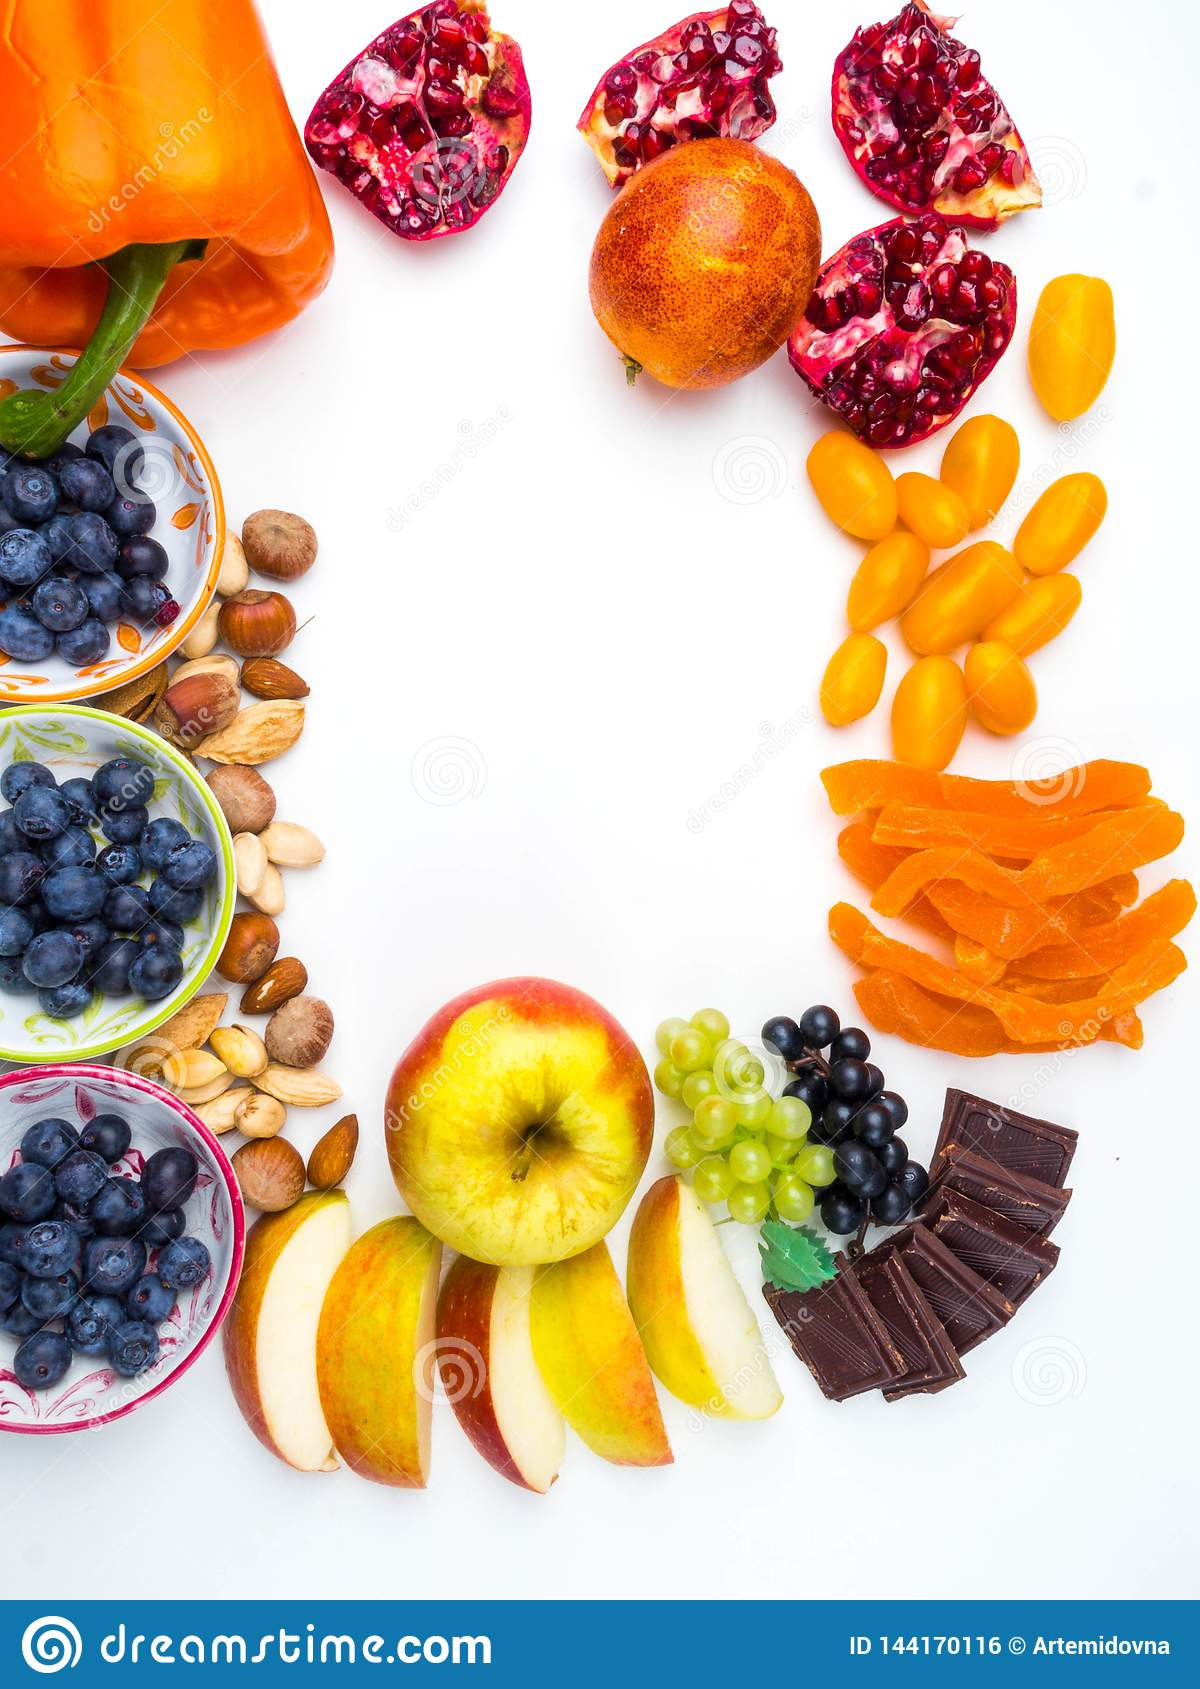 Good Foods For Heart Healthy Diet Super Healthy Food Rich In Antioxidants Good Sources Of Vitamins Resveratrol Stock Photo Image Of Concept Health 144170116